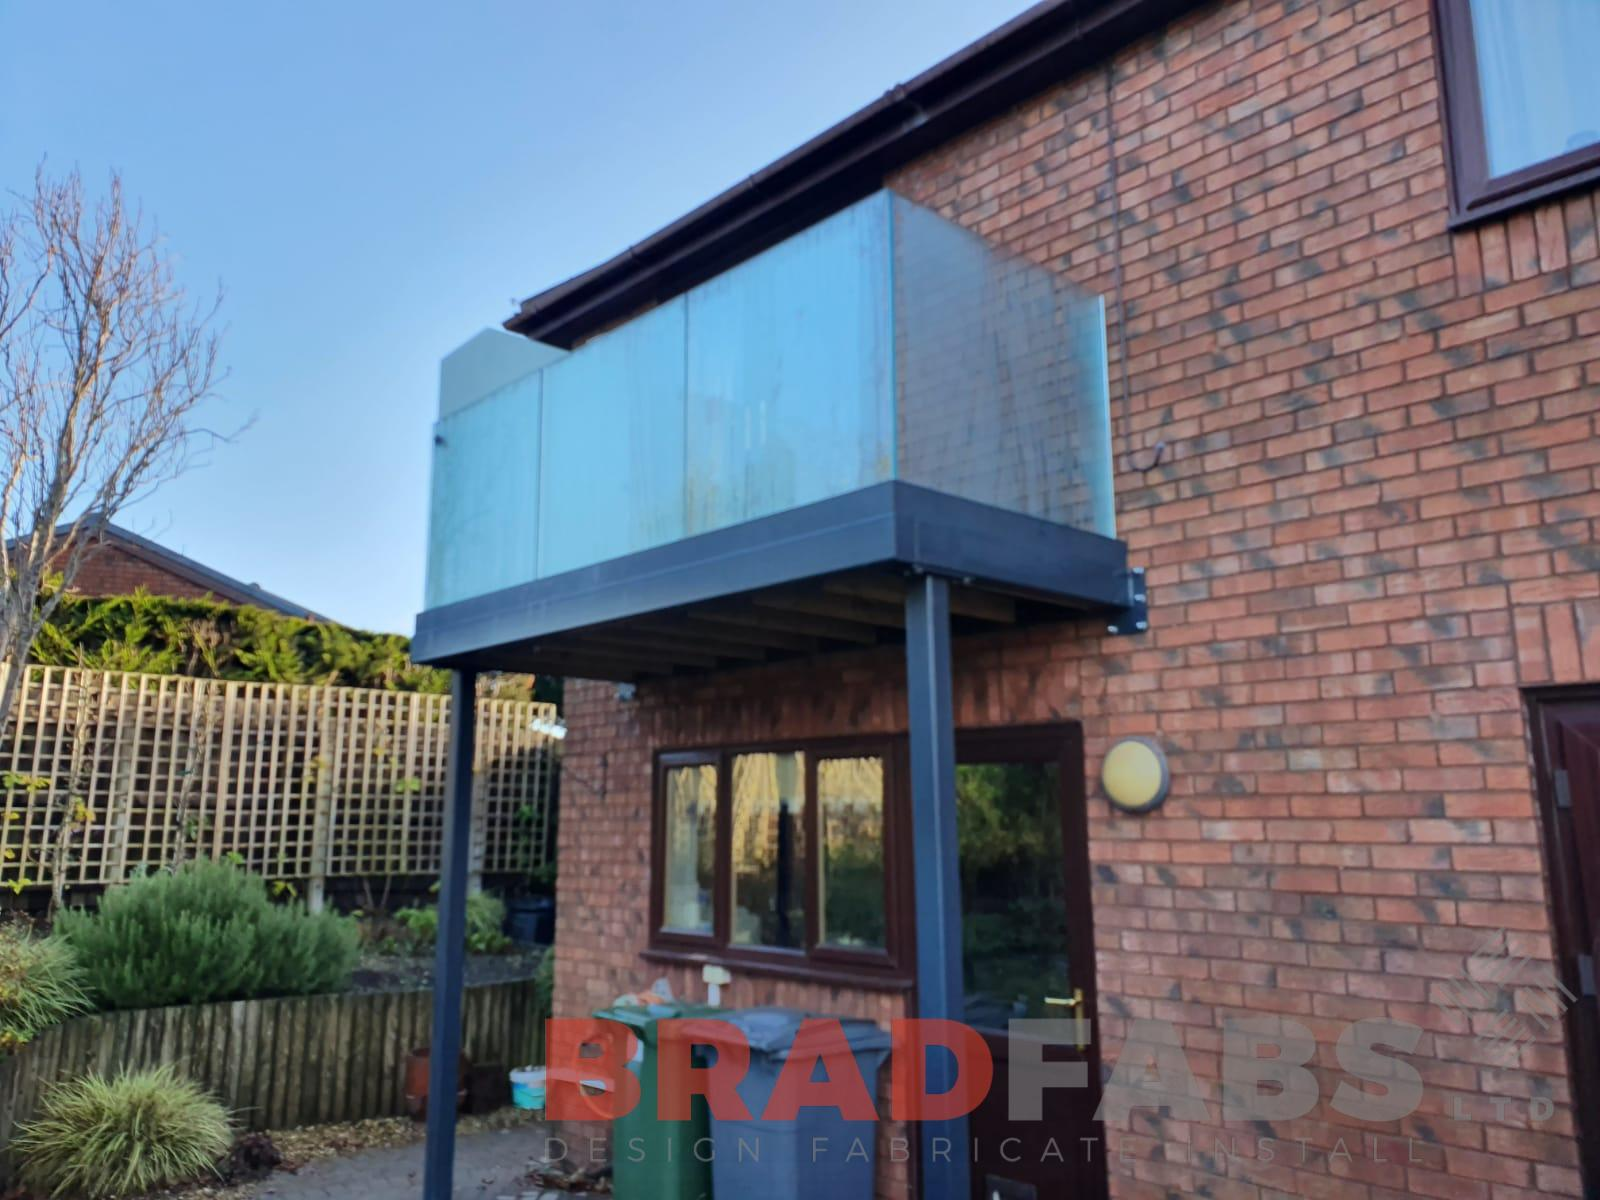 Bradfabs, bespoke balcony, channel system balustrade, infinity glass balustrade, privacy screen balustrade, composite decking